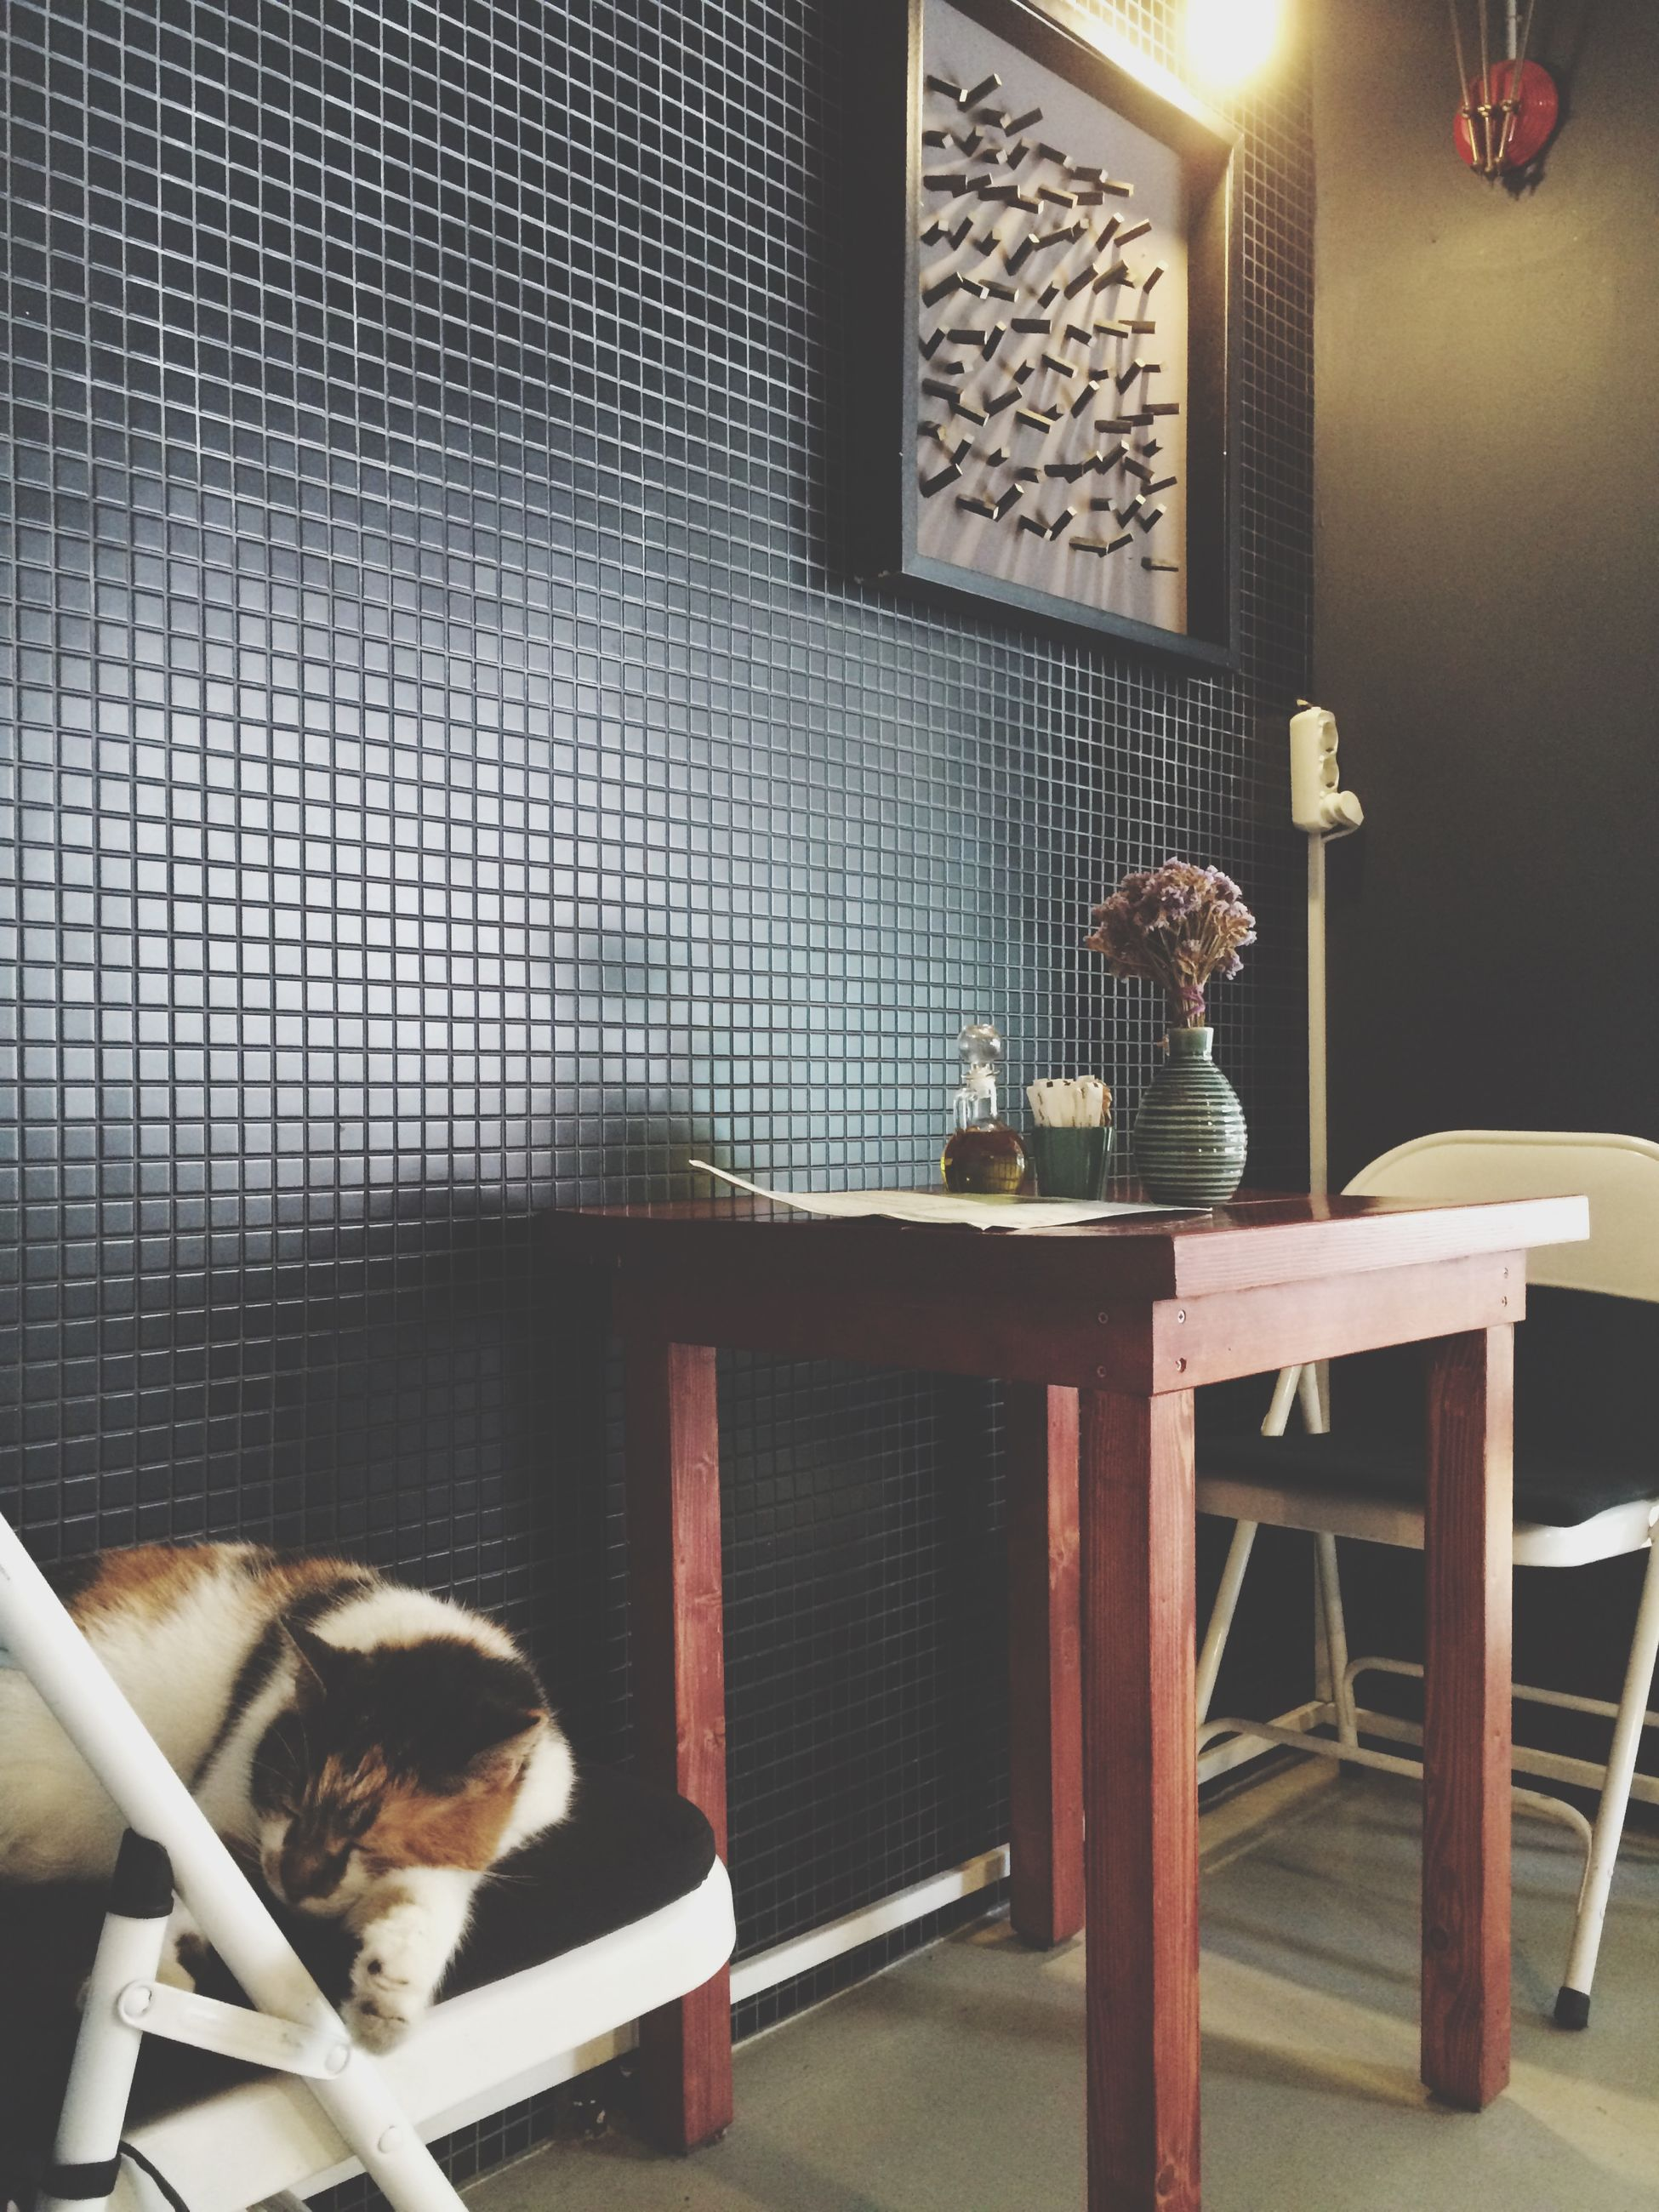 indoors, home interior, sitting, pets, chair, domestic animals, animal themes, mammal, window, one animal, relaxation, domestic room, technology, illuminated, home, no people, door, table, sofa, house